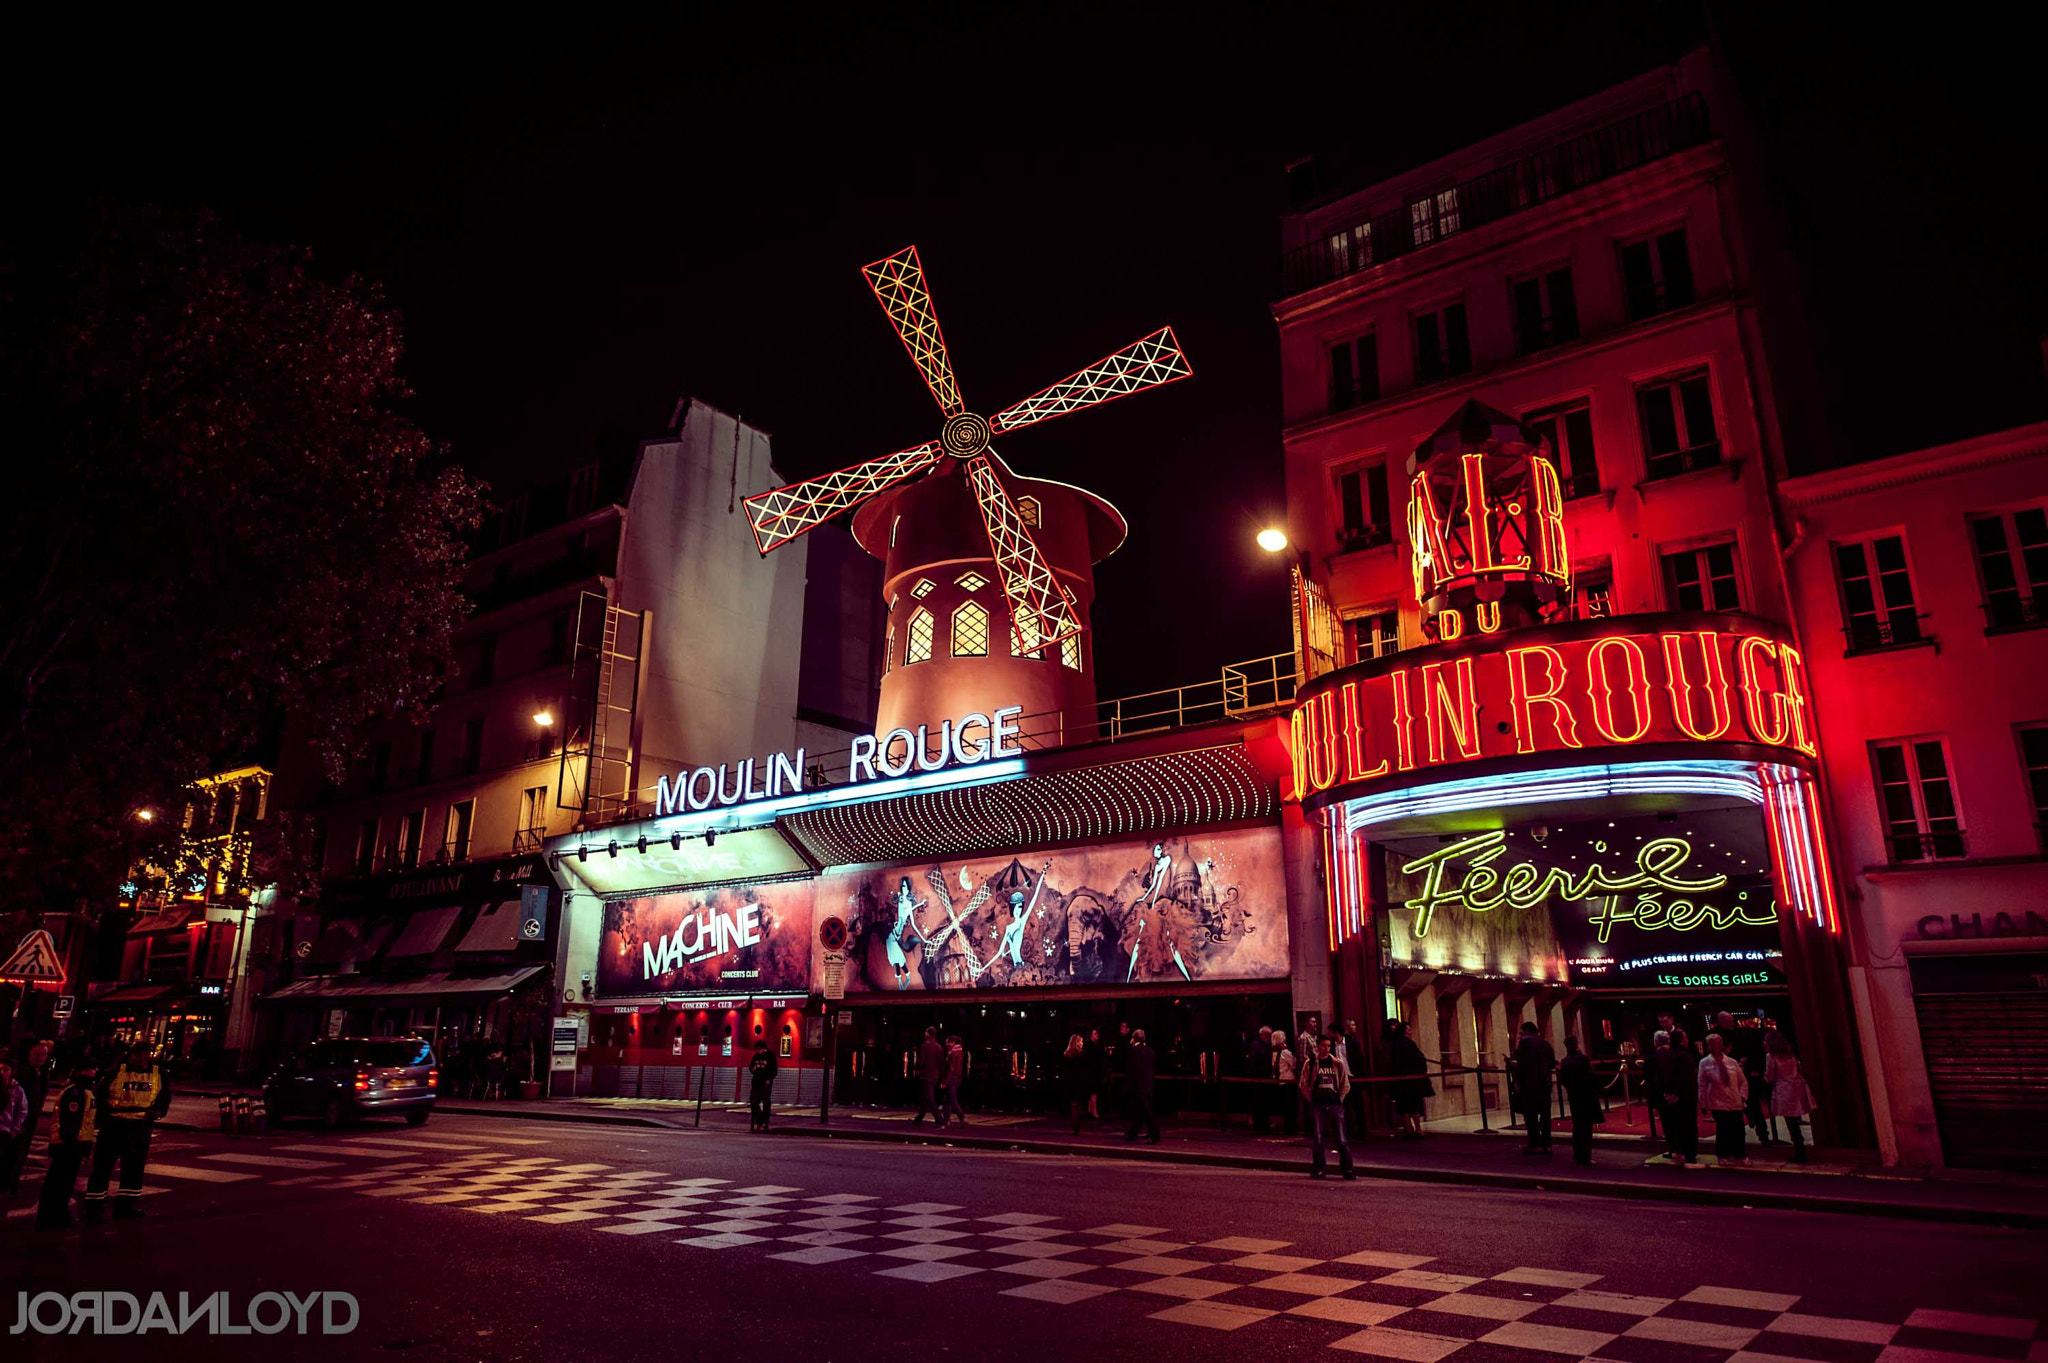 Photograph Moulin Rouge by Jordan Loyd on 500px